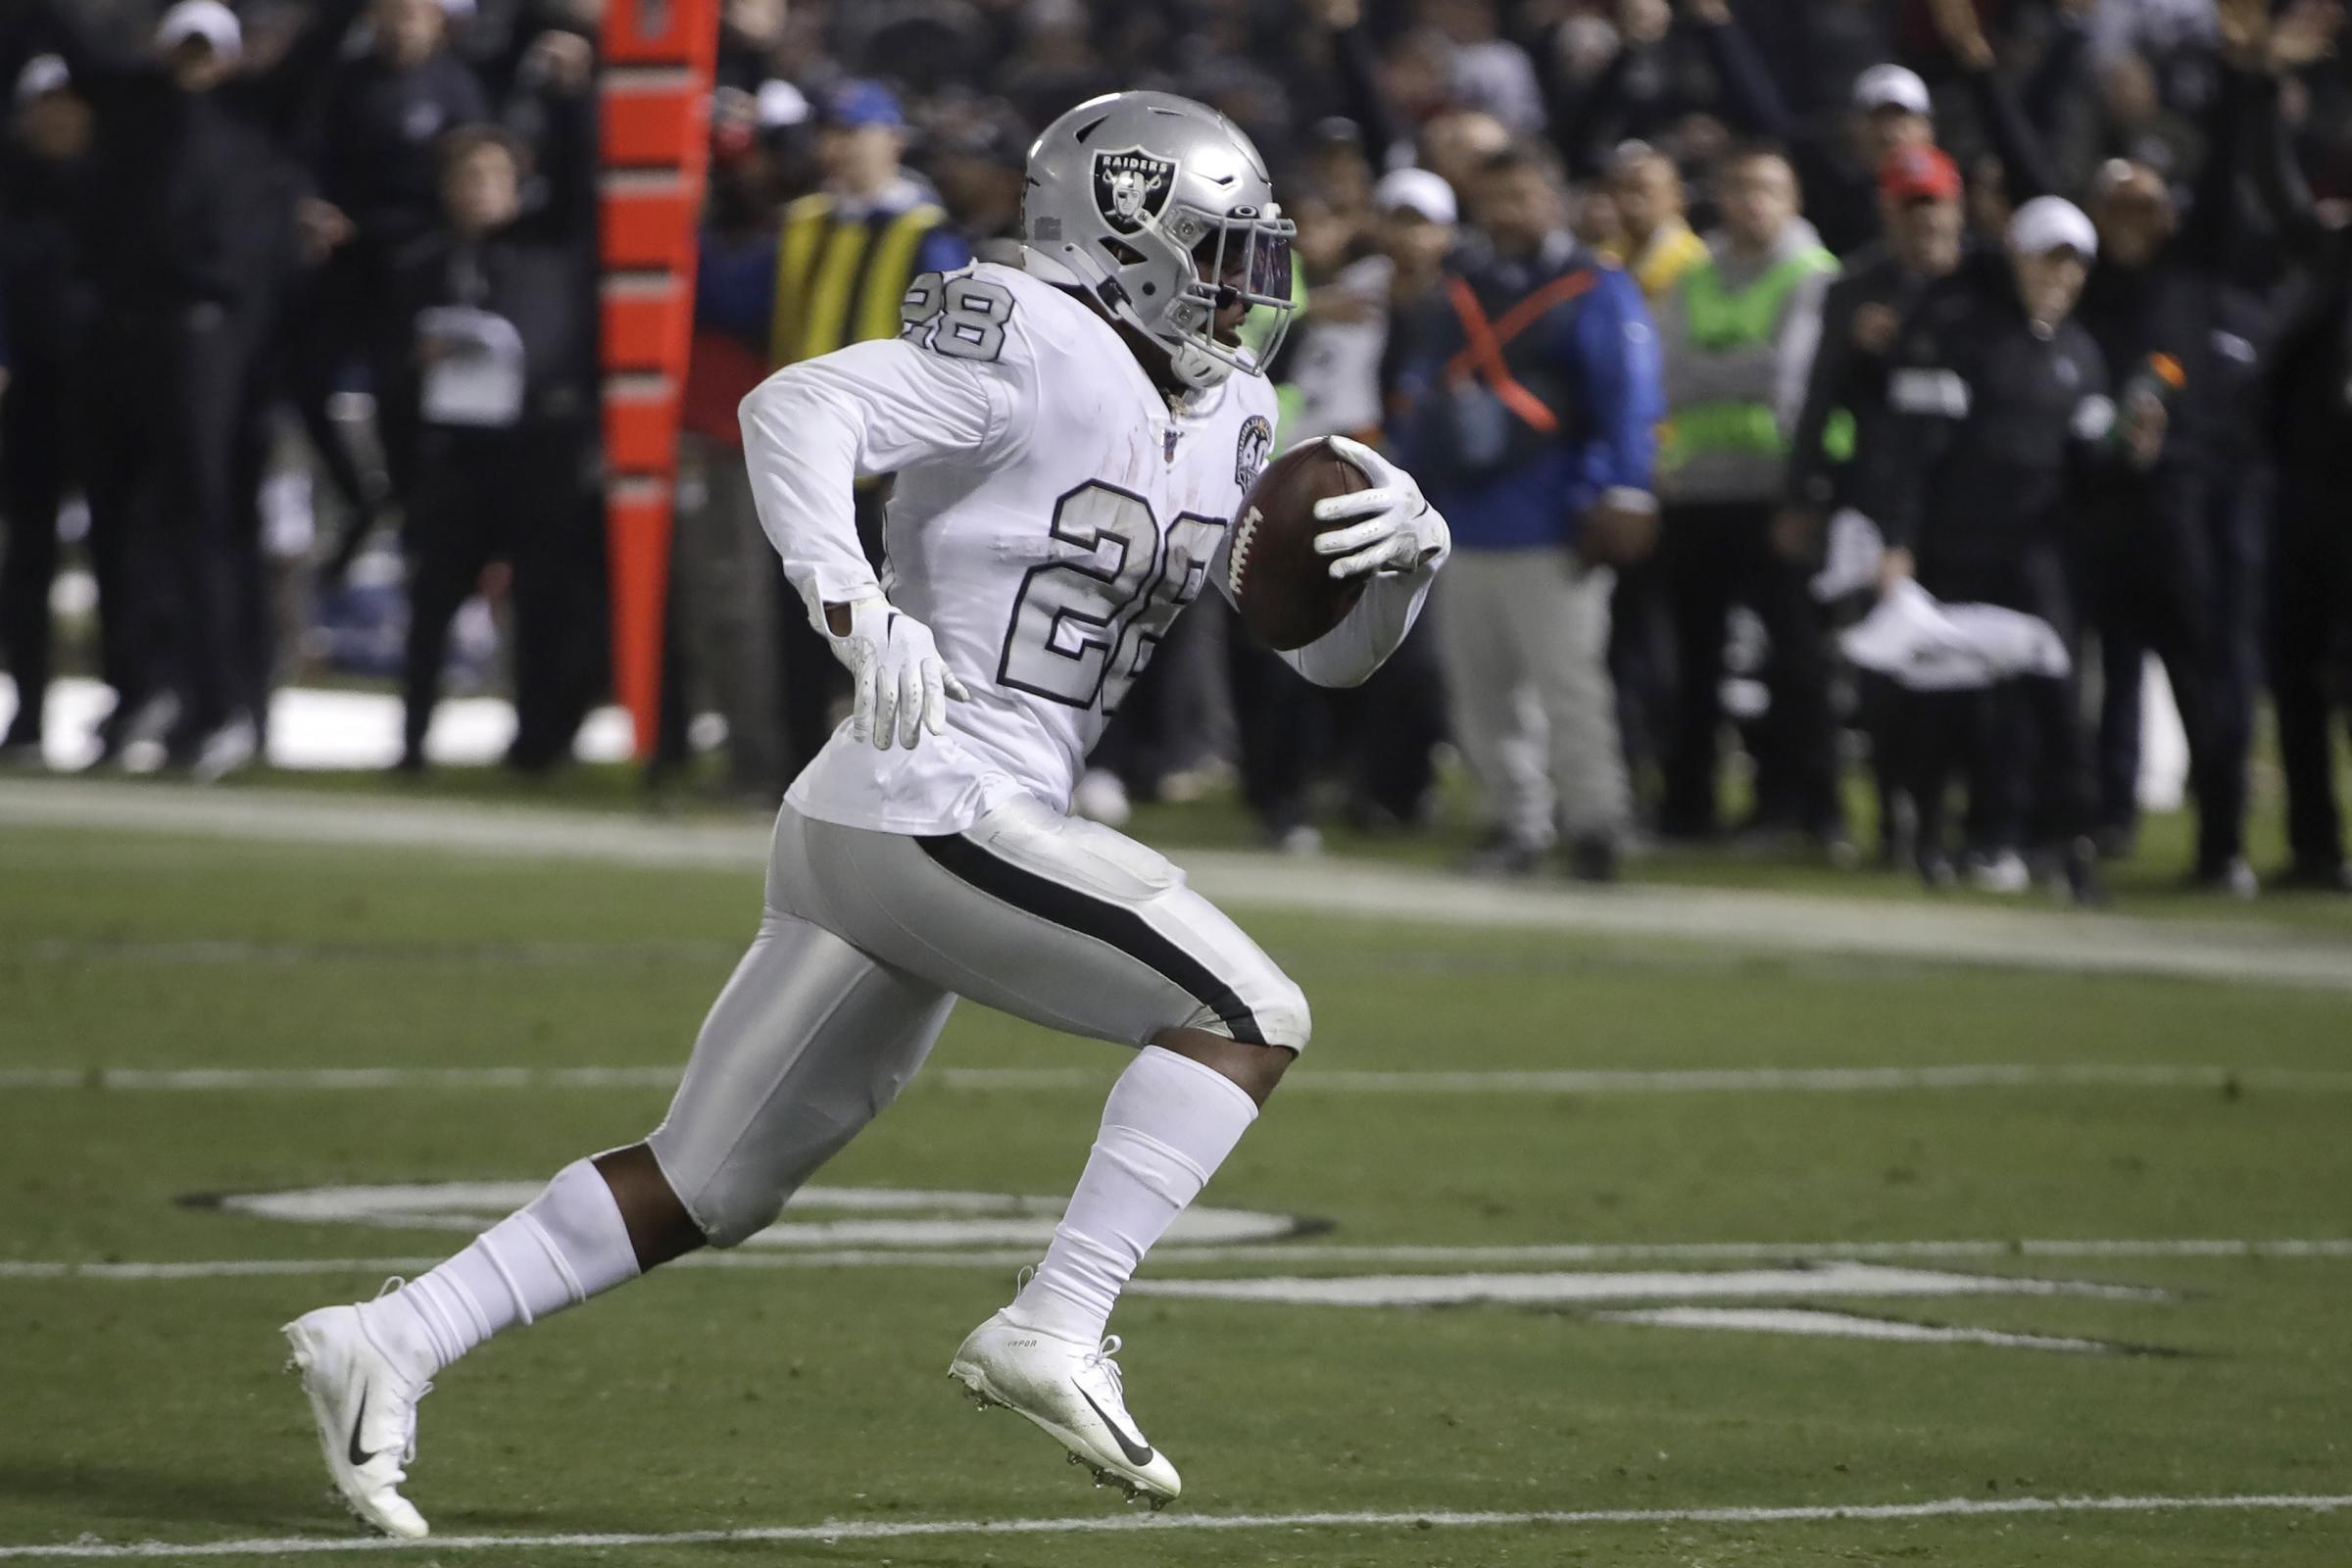 Josh Jacobs claims late touchdown as Oakland Raiders edge Chargers - St Helens Star